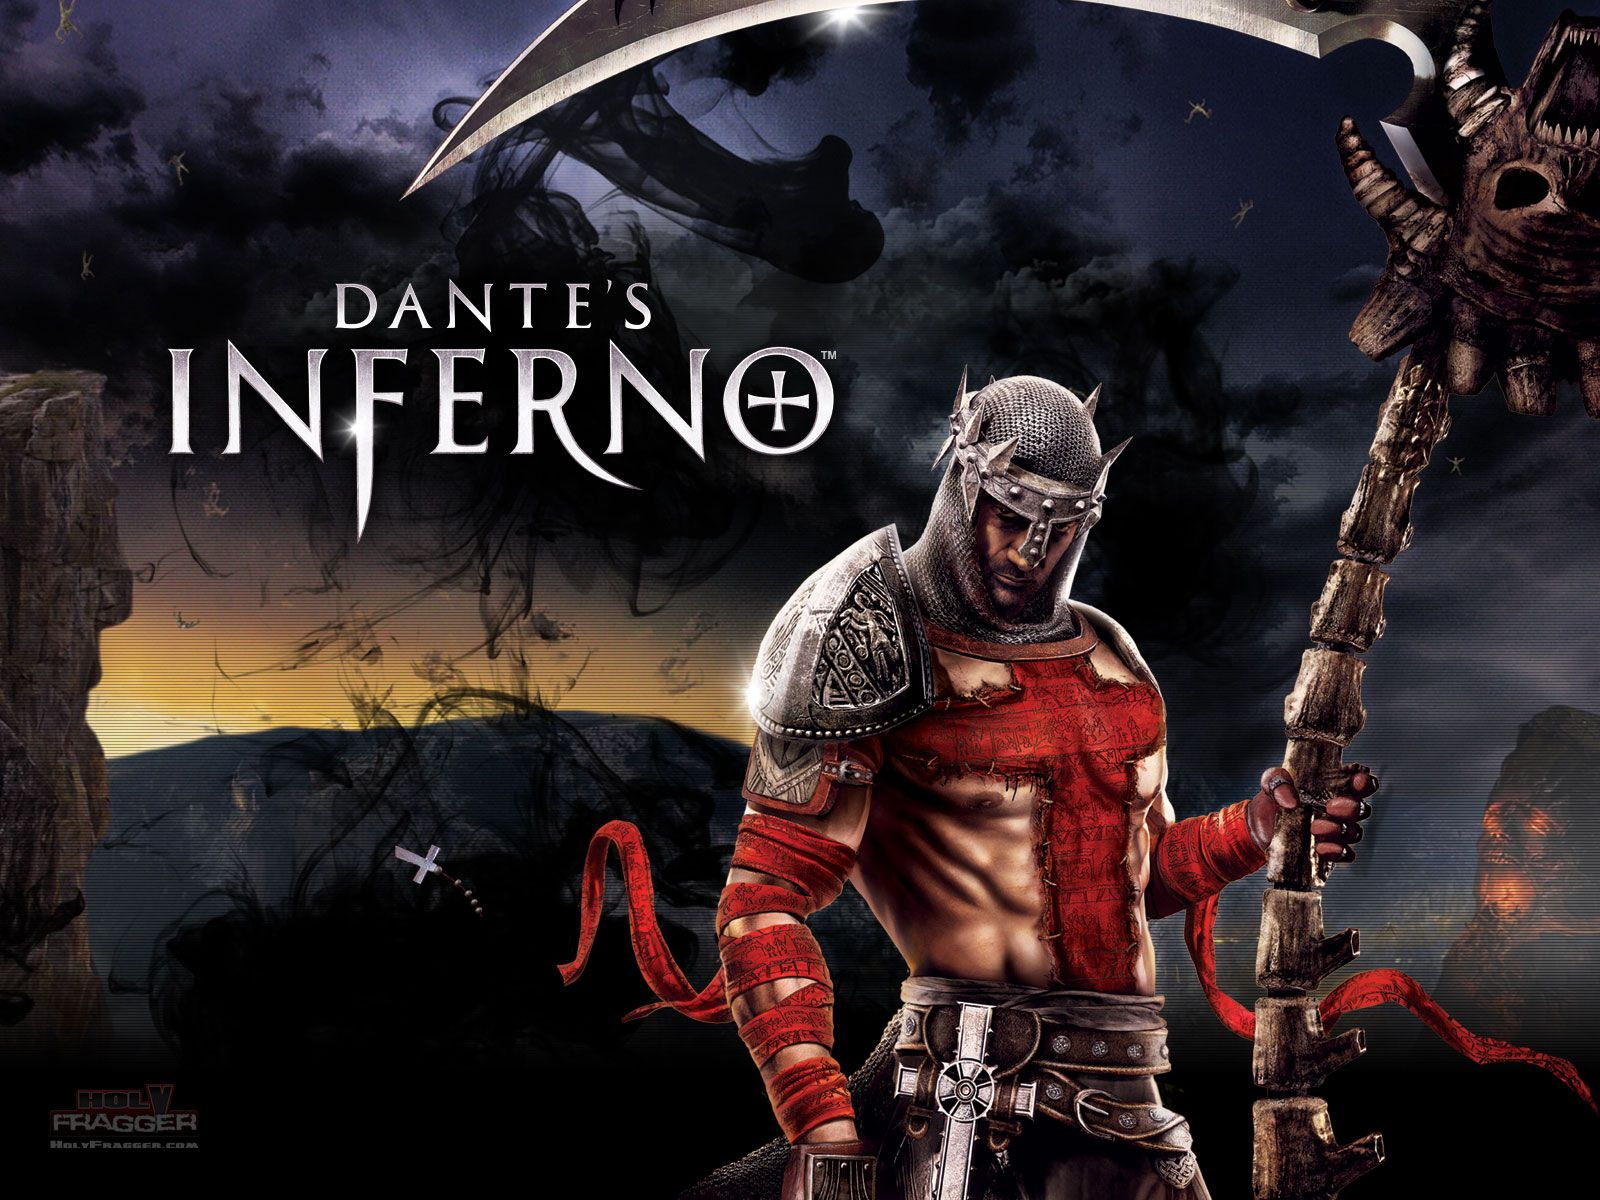 dantes inferno by dante alighieri essay Dante's inferno essay this essay dante's inferno essay and other 63,000+ term papers, college essay examples and free essays are available now on reviewessayscom.